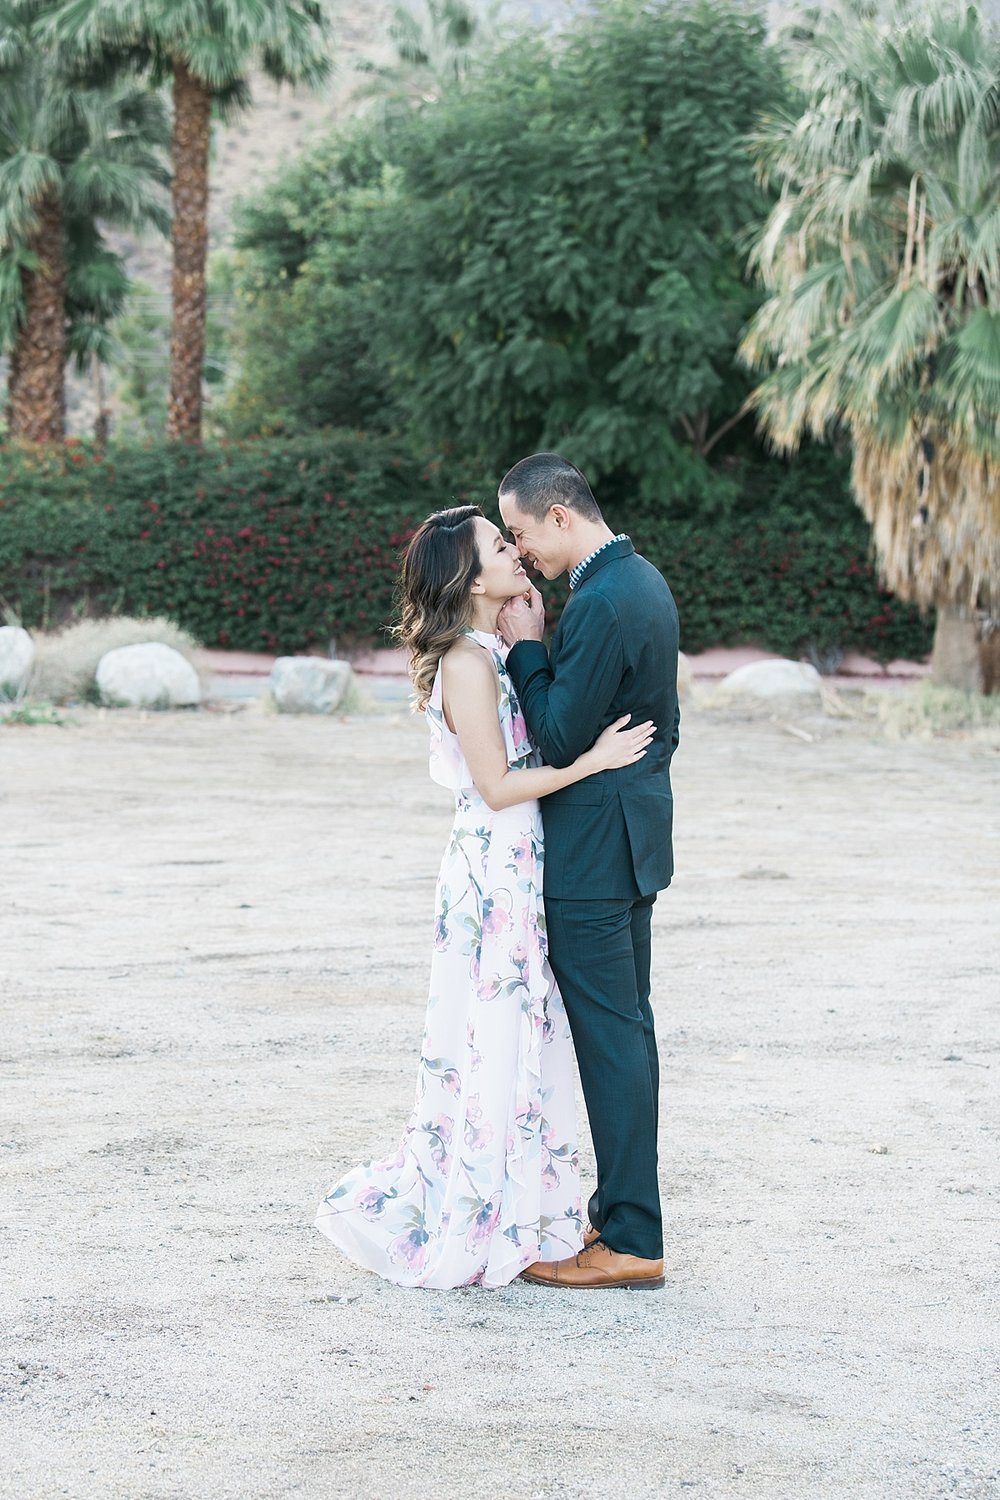 Palm-Springs-Engagement-Photographer-Tiff-Kenny-Carissa-Woo-Photography_0028.jpg